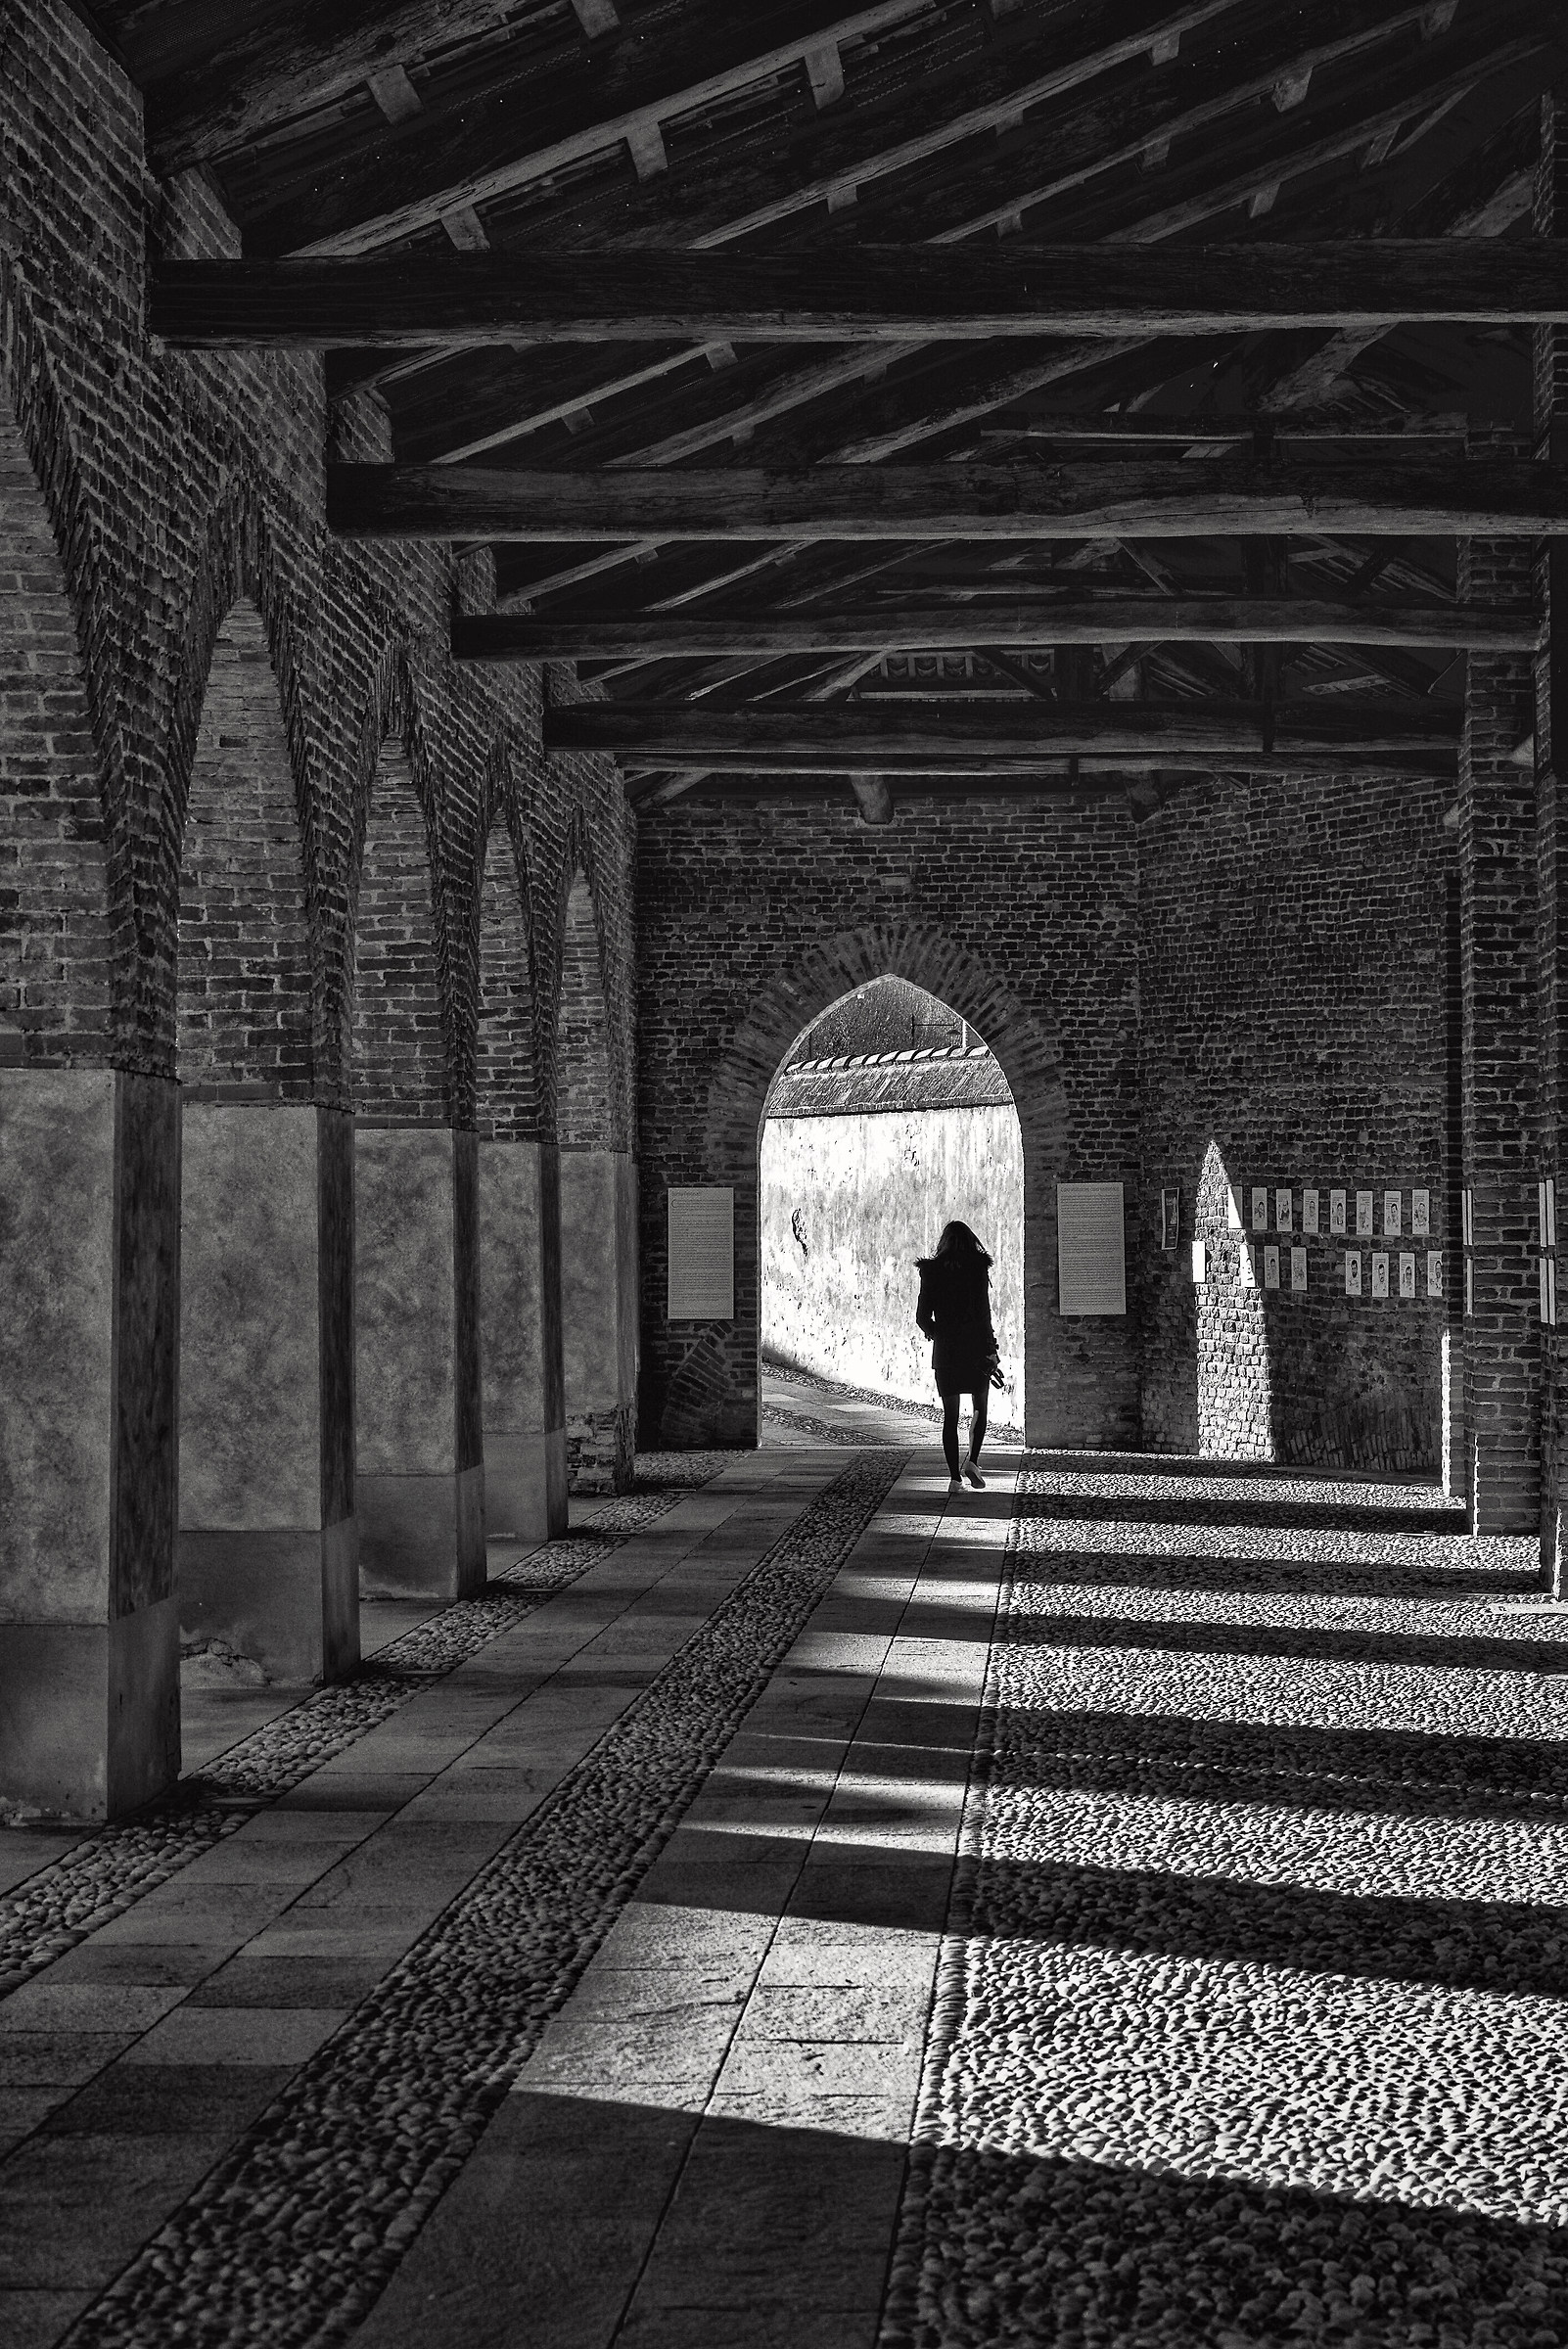 Arches ...